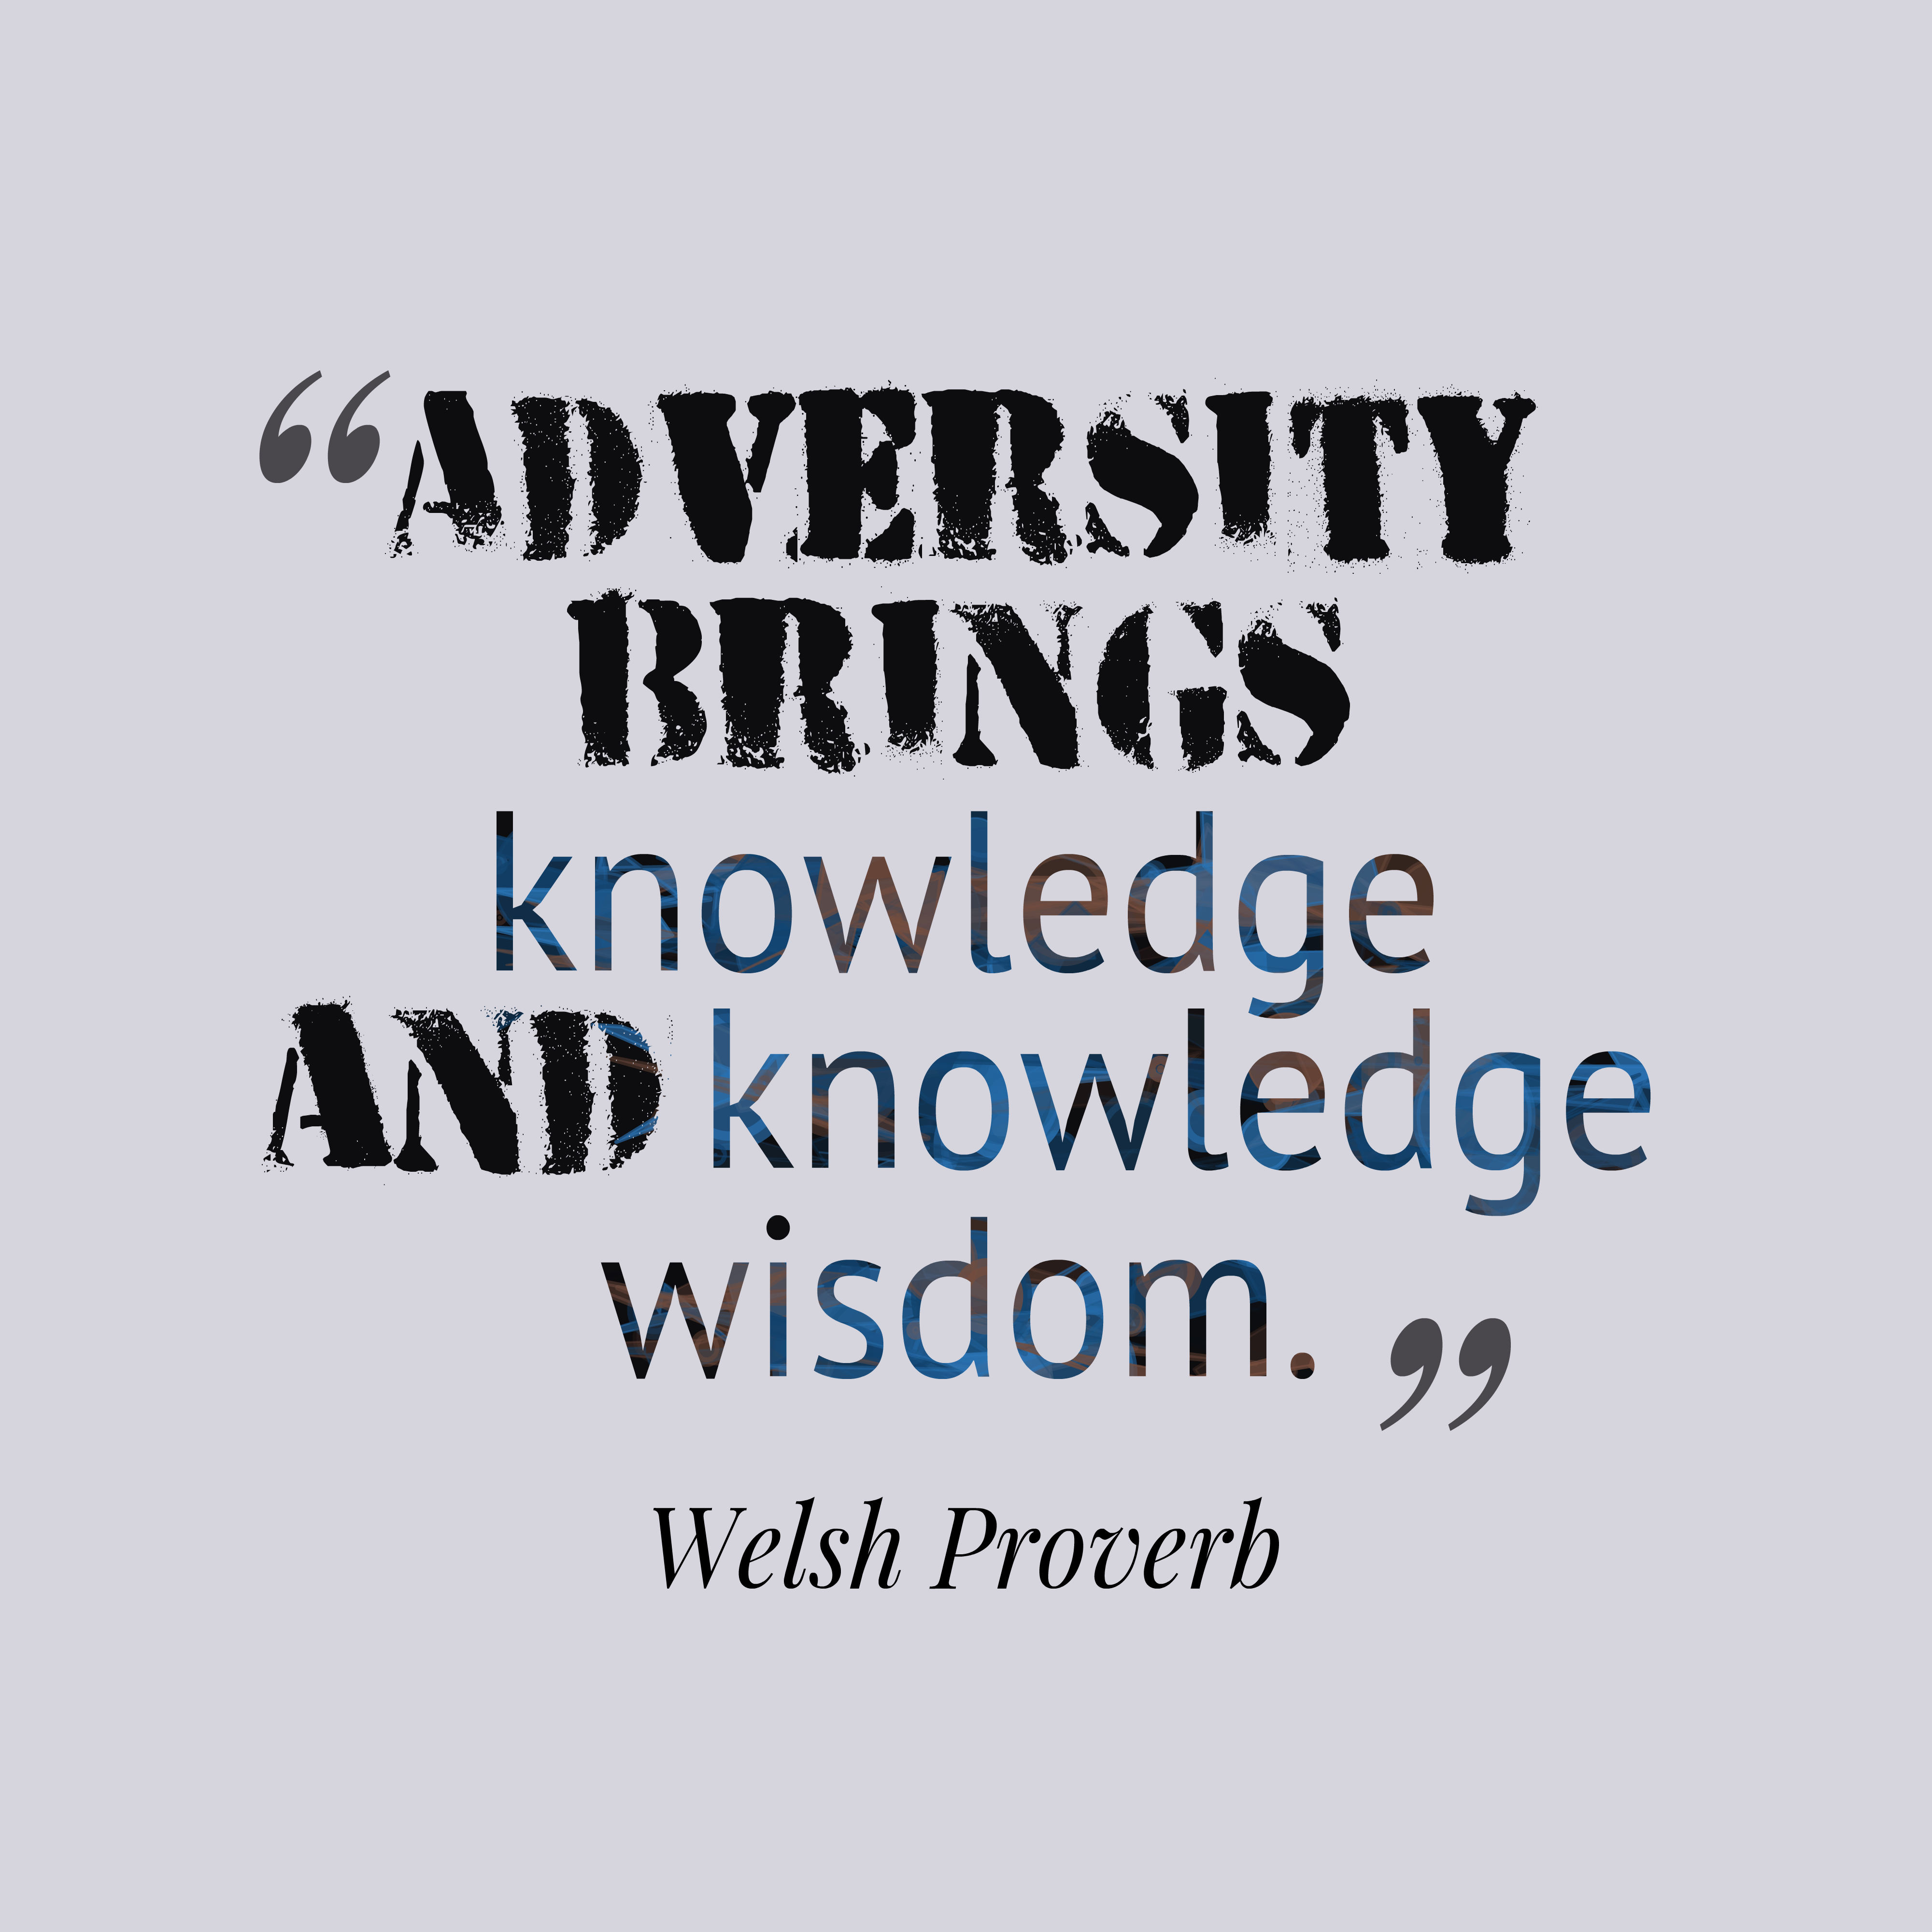 Quotes image of Adversity brings knowledge and knowledge wisdom.